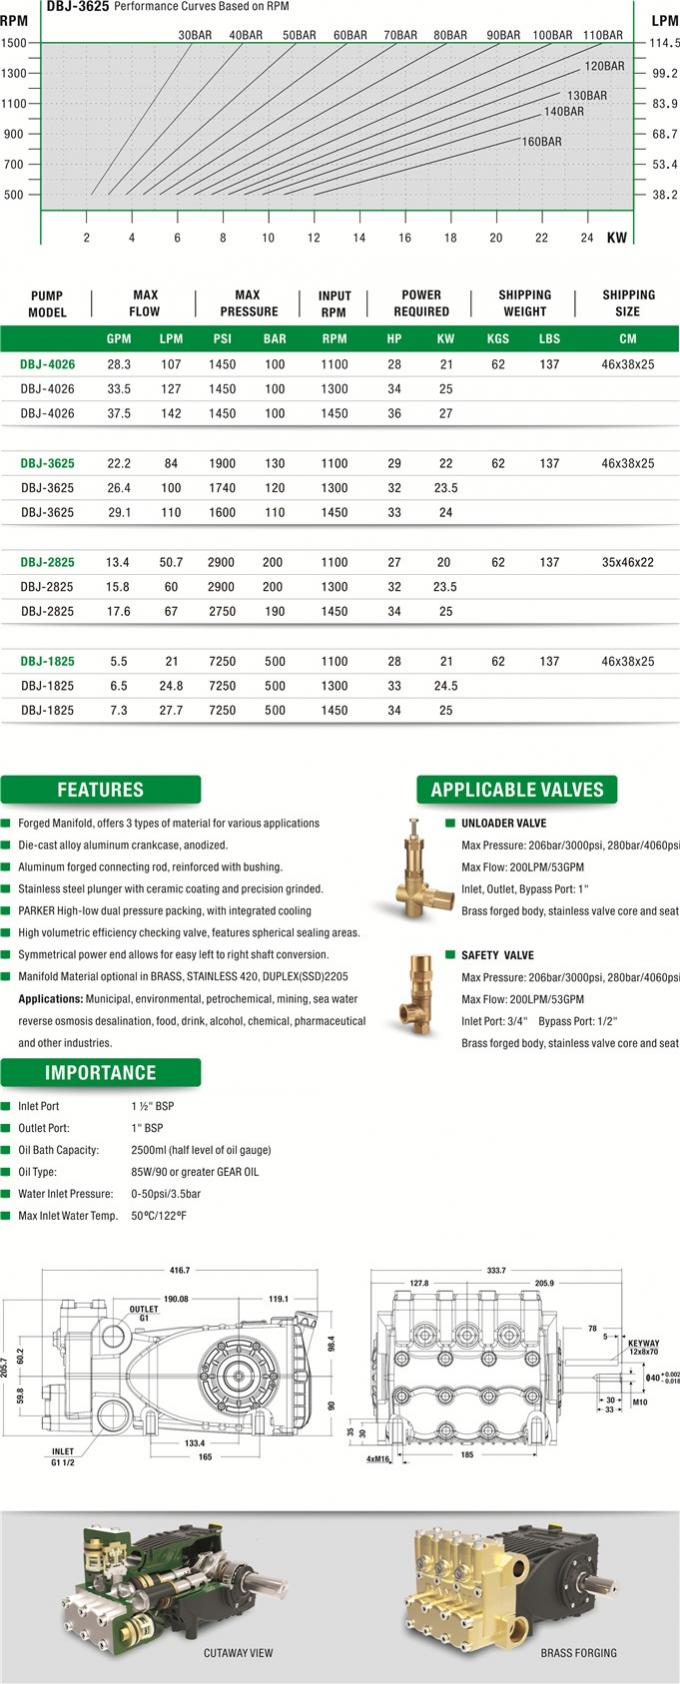 DBJ RECIPROCATING HIGH PRESSURE STAINLESS STEEL PLUNGER PUMP 500BAR MAX